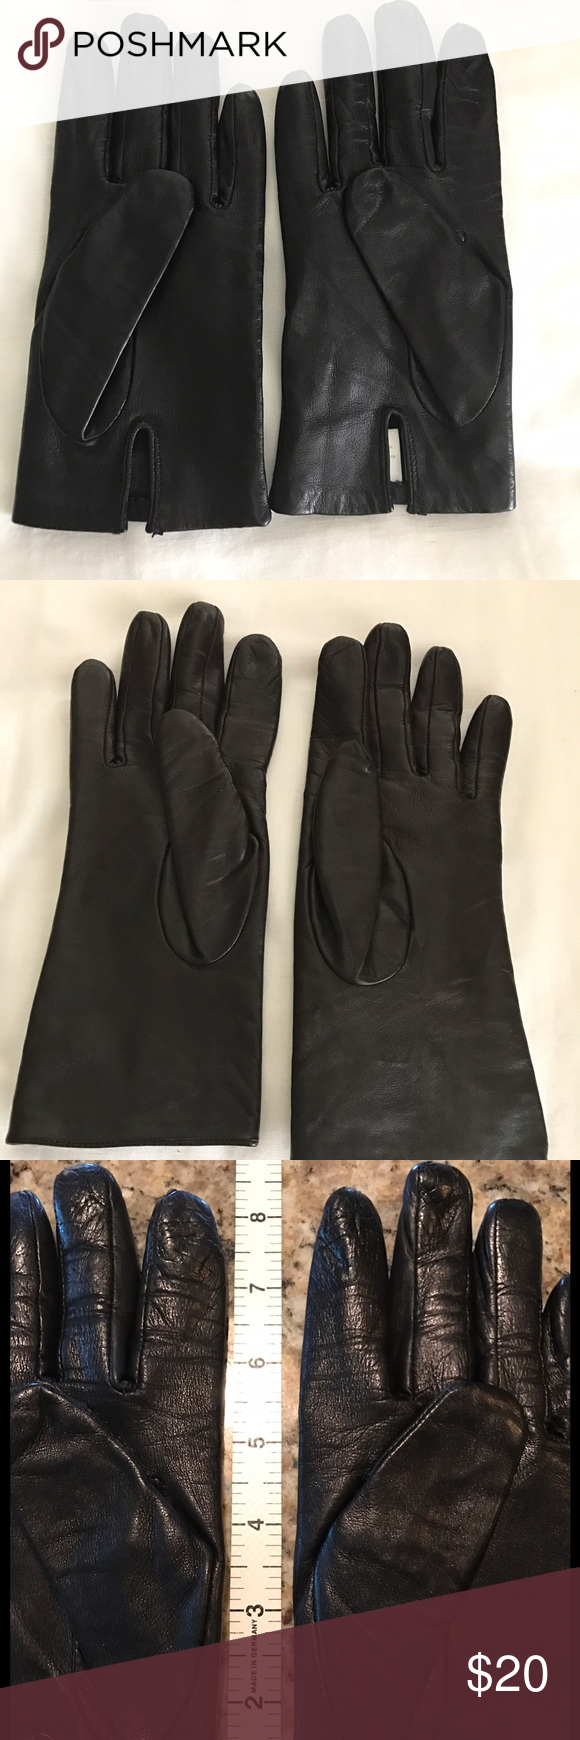 Ladies leather gloves with silk lining - Ladies Leather Gloves Black Ladies Genuine Leather Gloves 100 Silk Lining Made In Hungary A